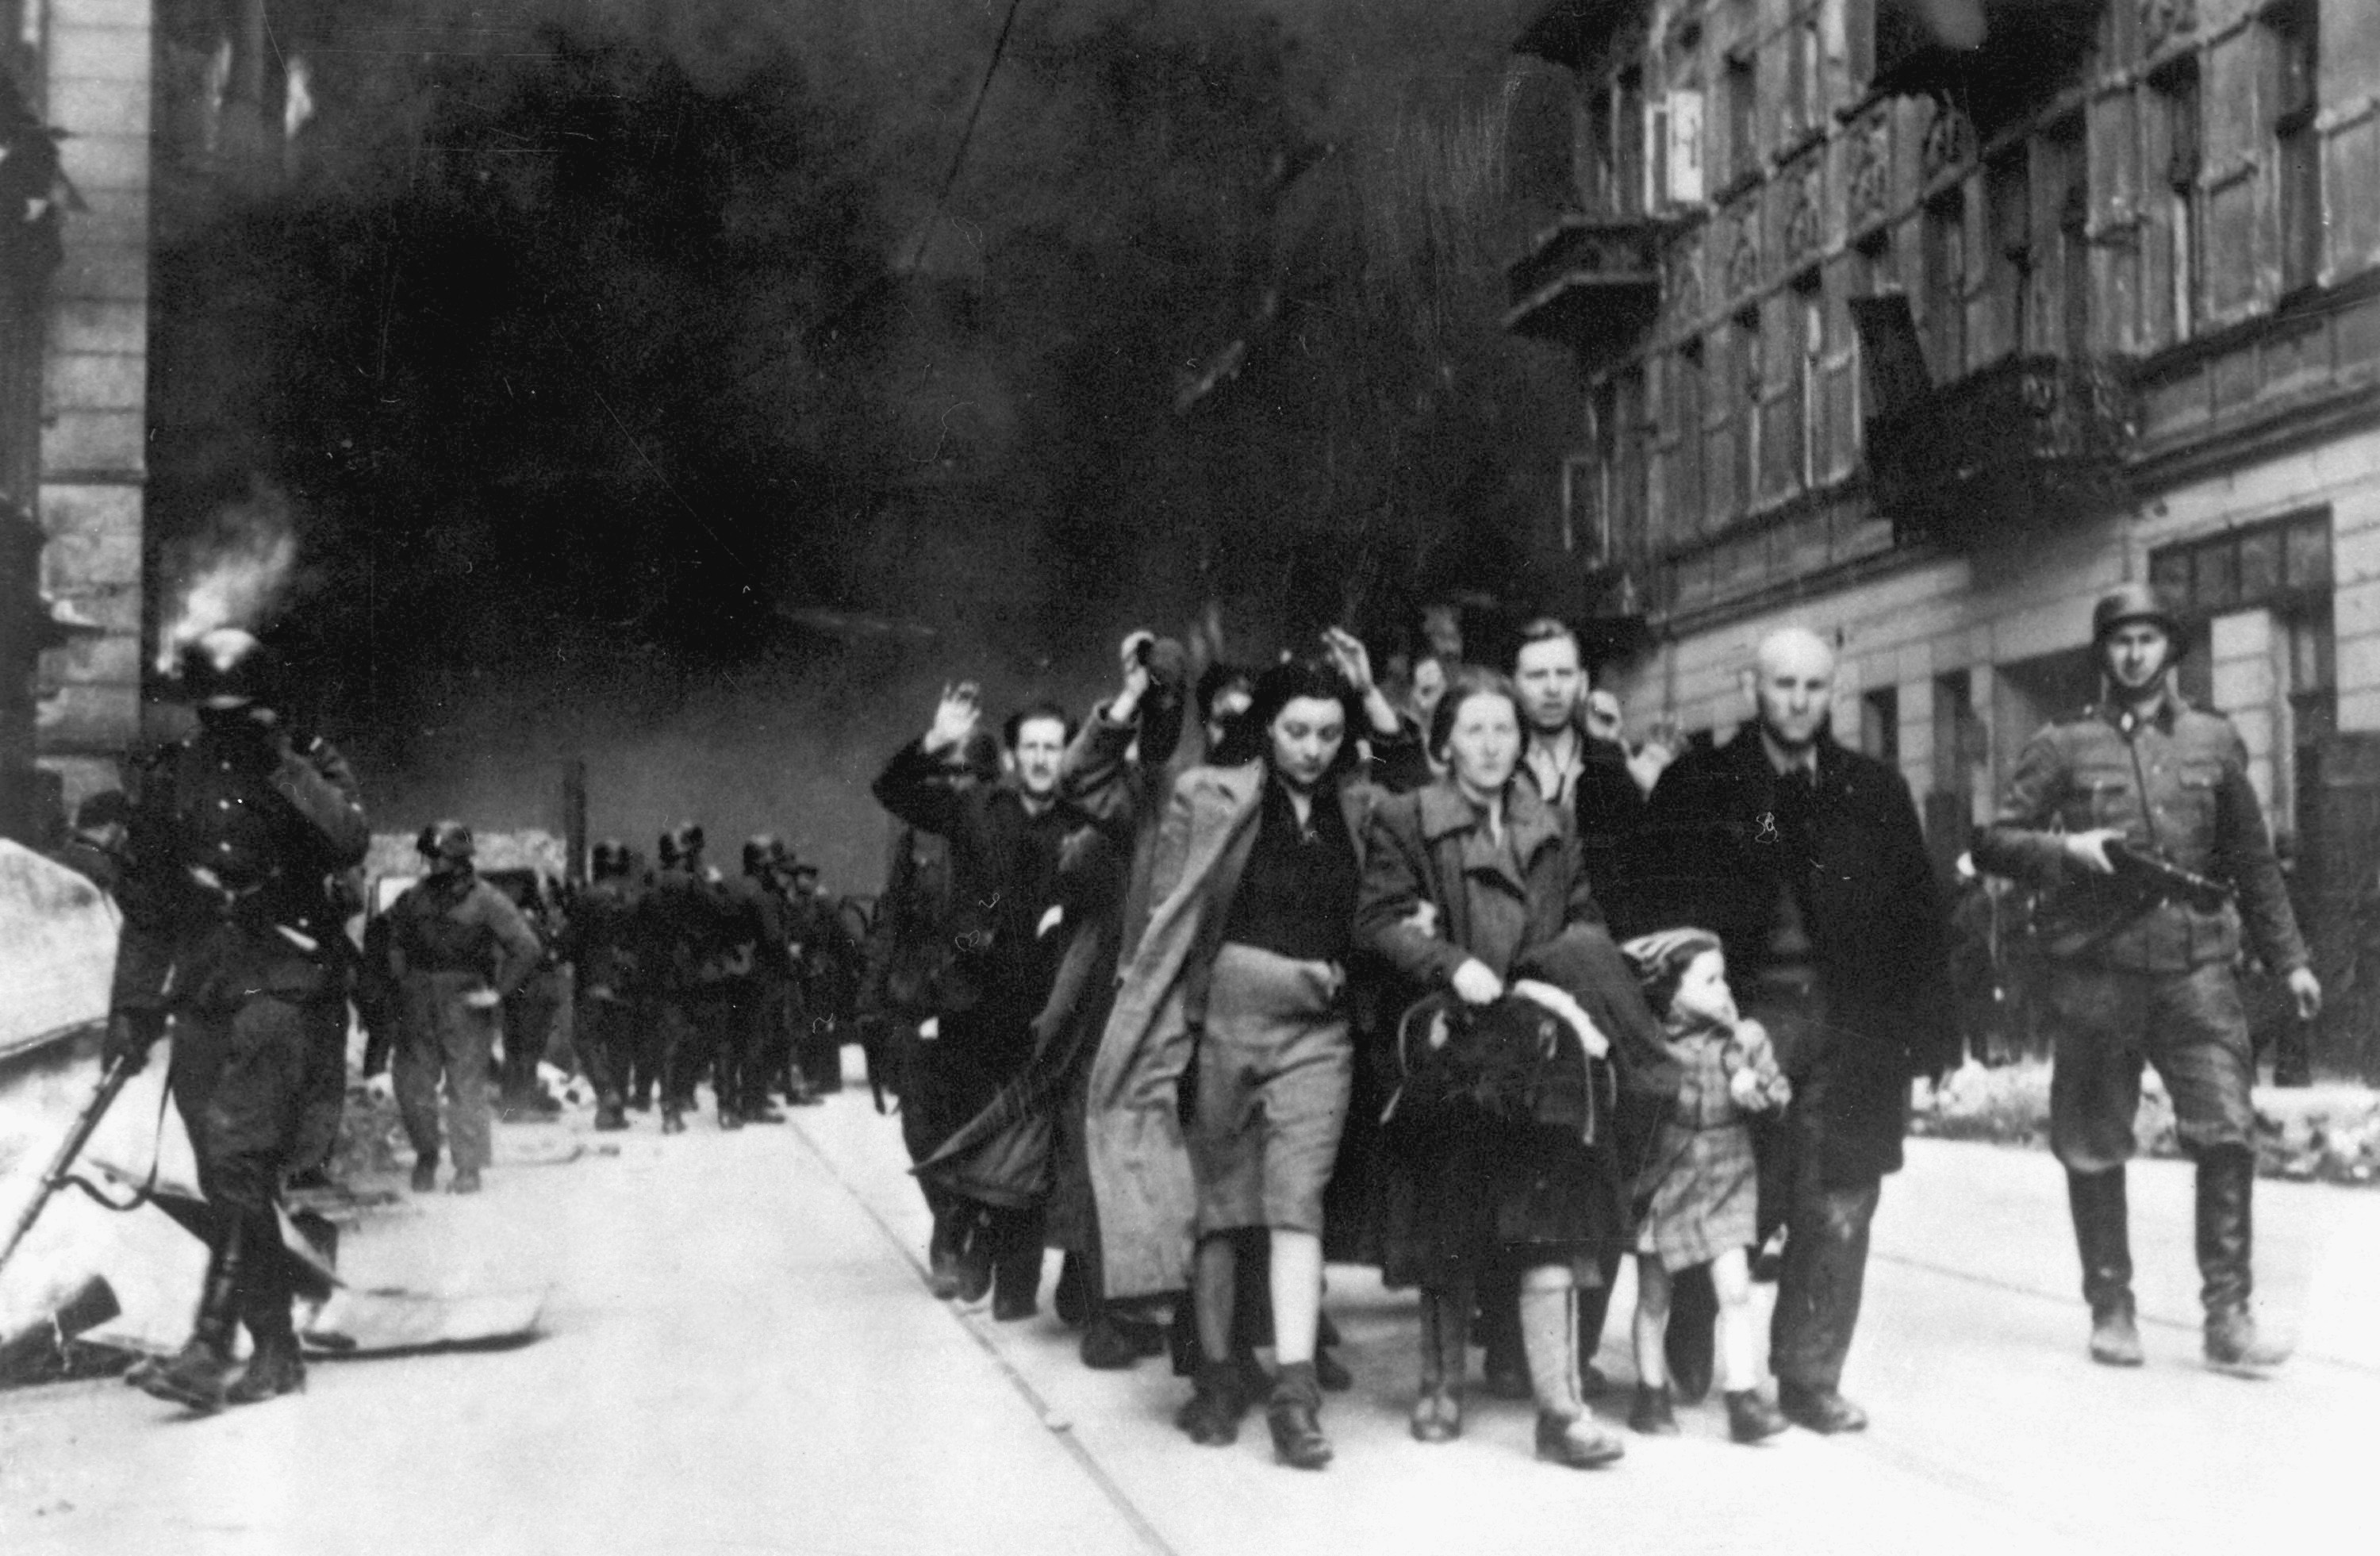 Jews in the Warsaw Ghetto are led to a deportation point sometime between April 19 and May 16, 1943 (Wikimedia Commons).